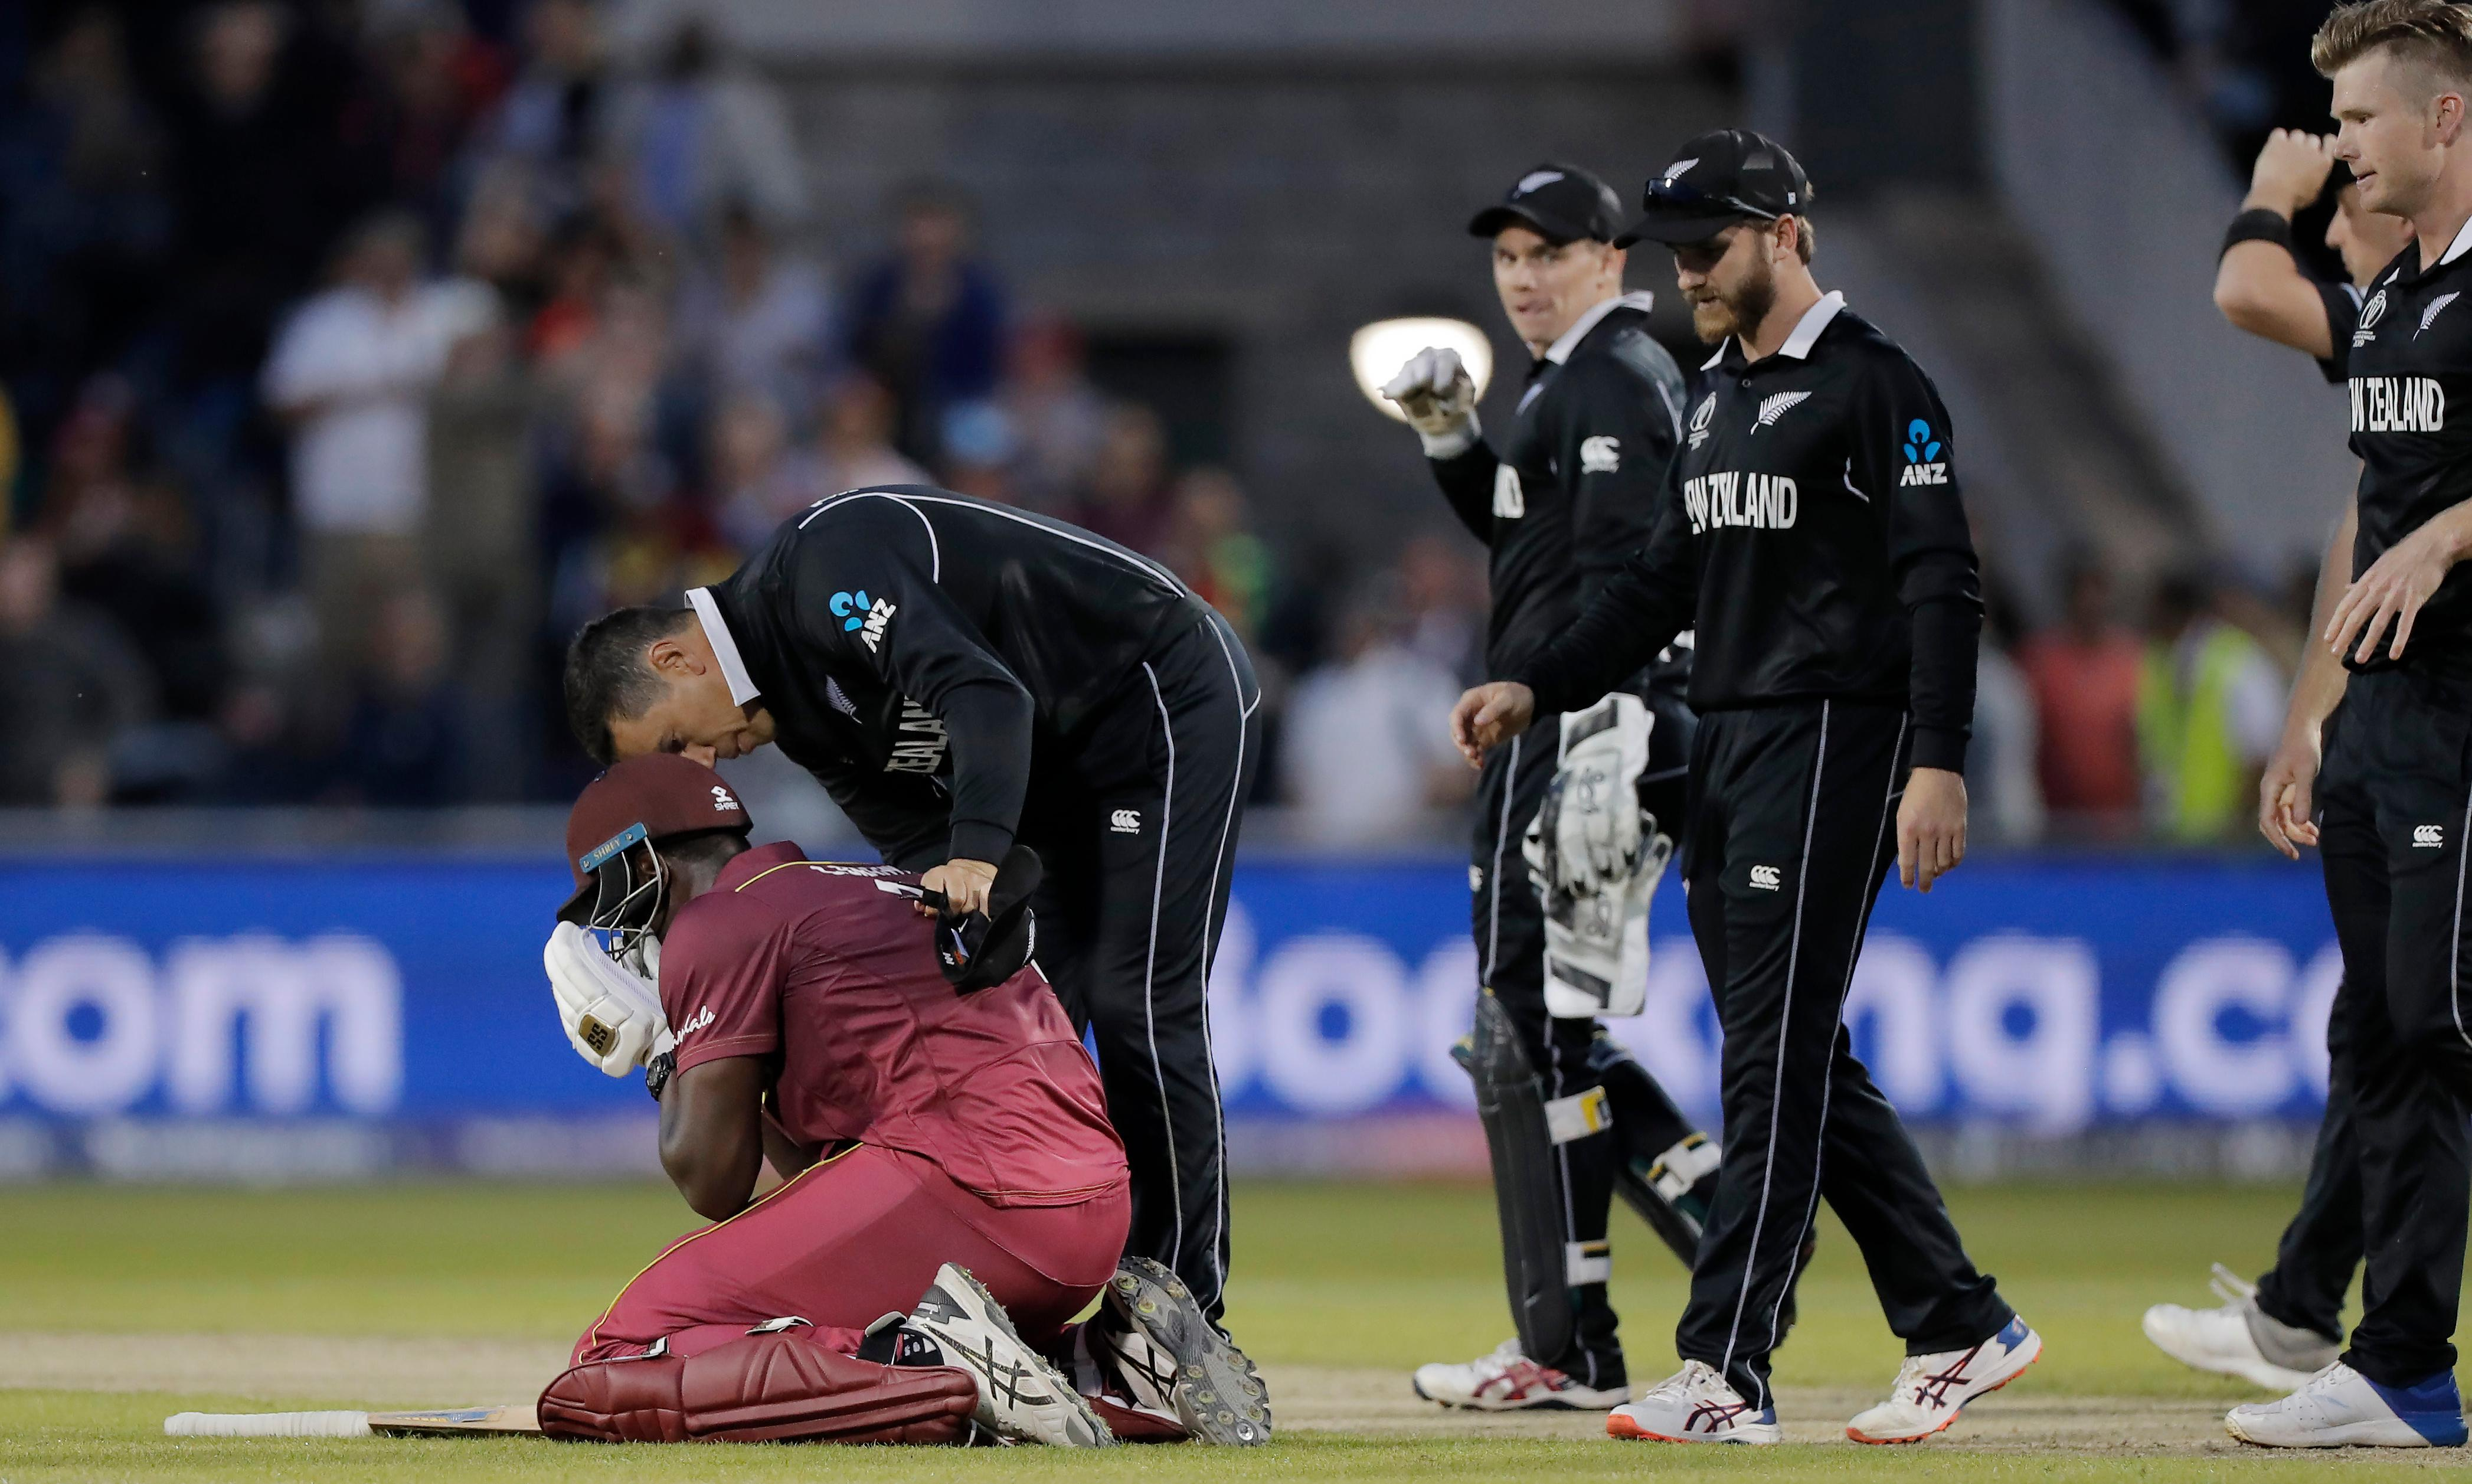 New Zealand foil dramatic big hitting by West Indies' Carlos Brathwaite